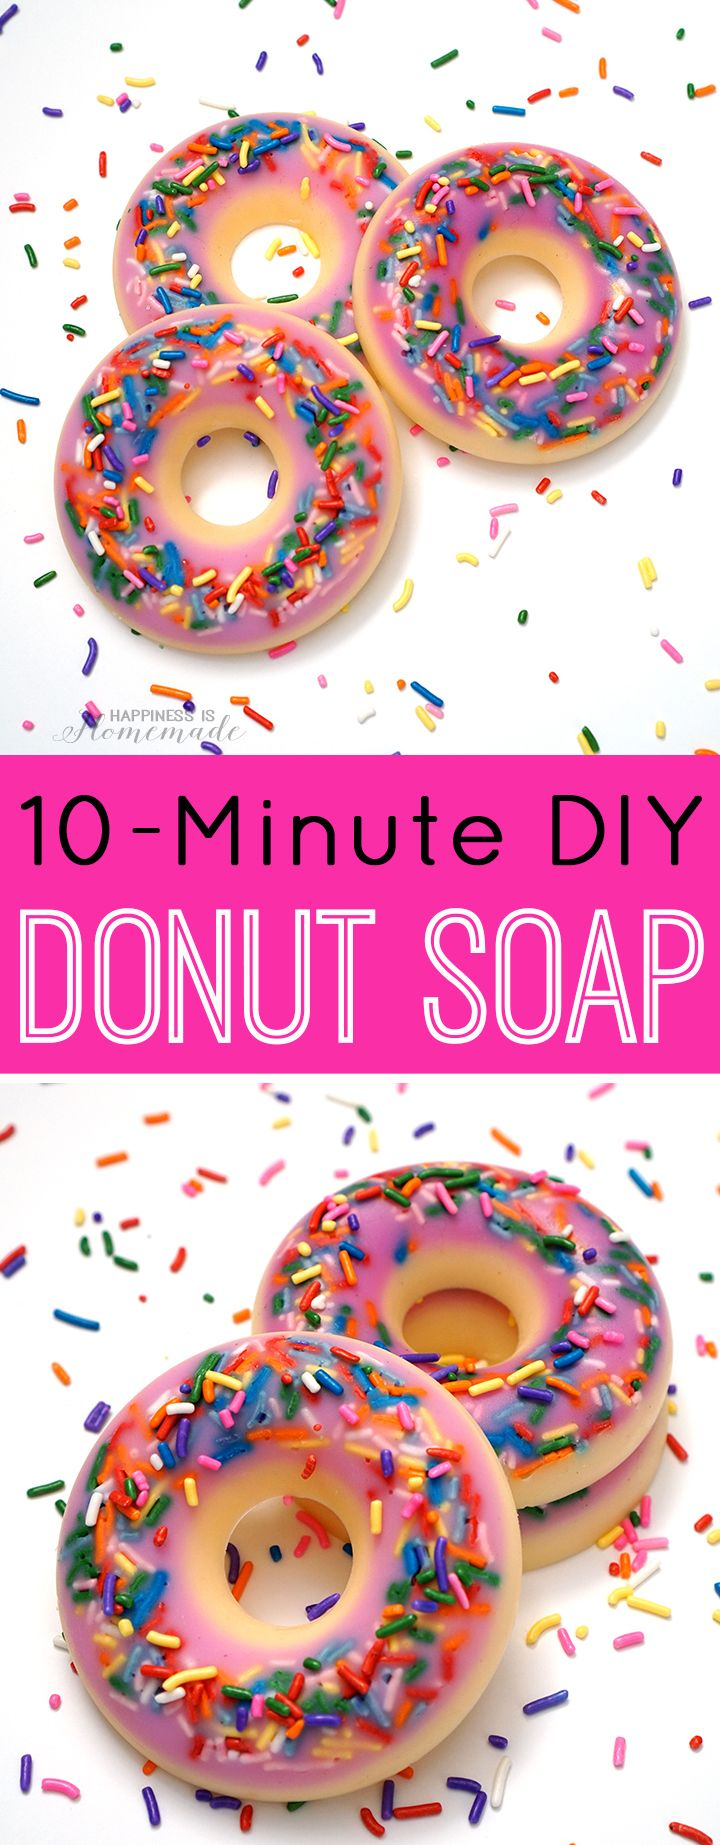 10 Minute DIY Donut Scented Soap                                                ...